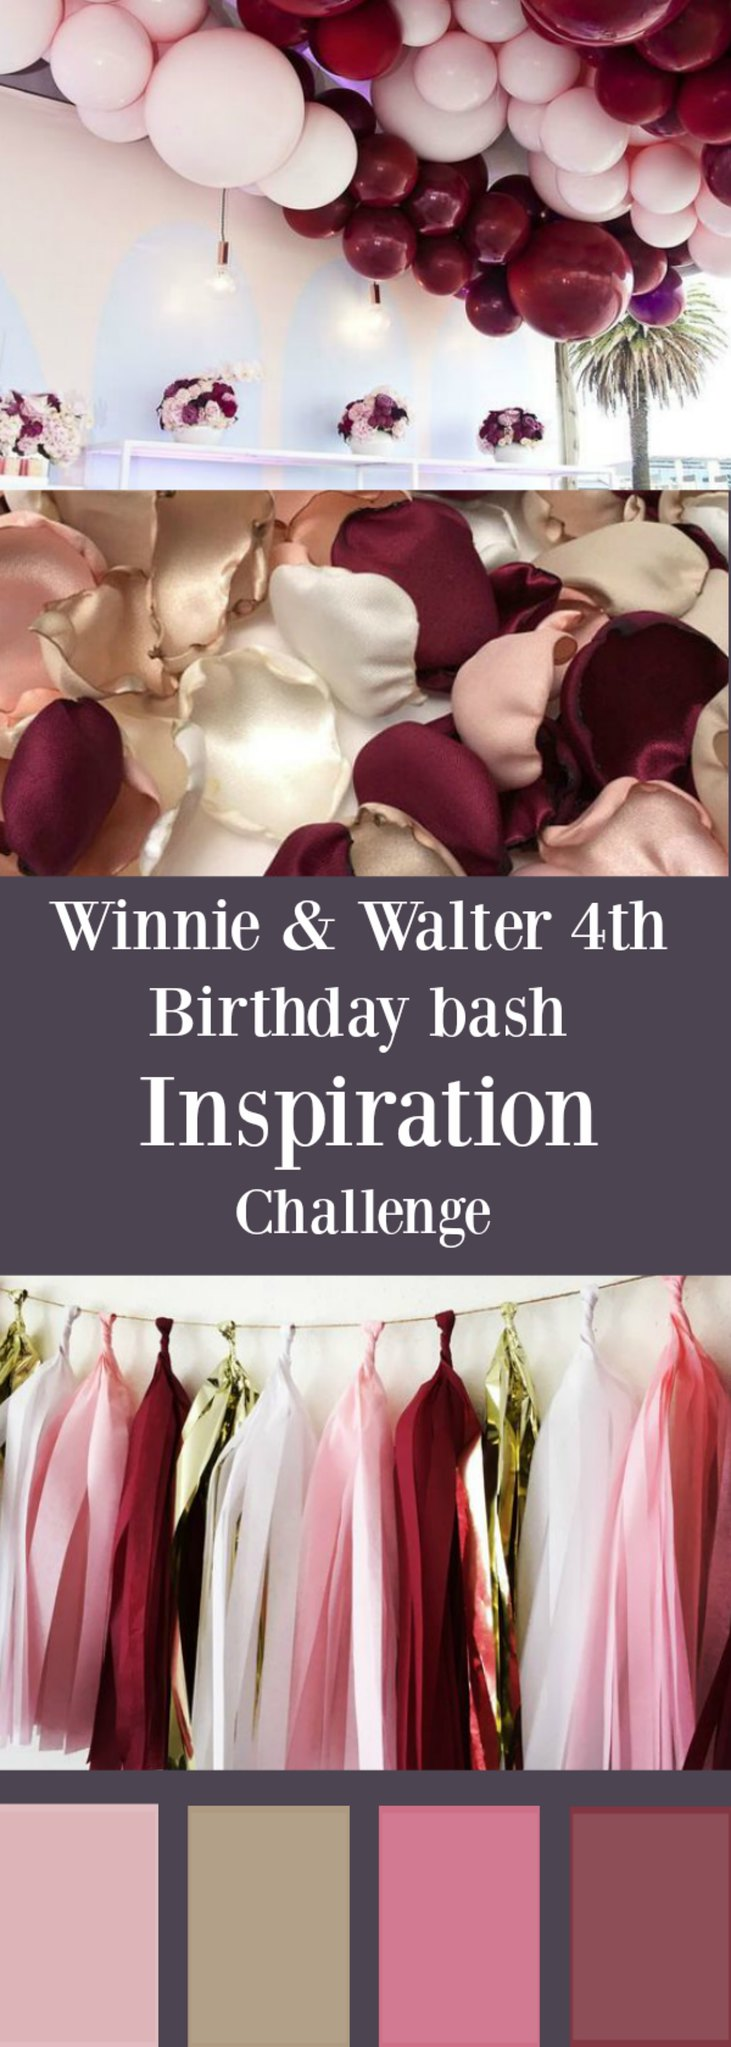 Gayatri Color Board for Winnie & Walter birthday bash